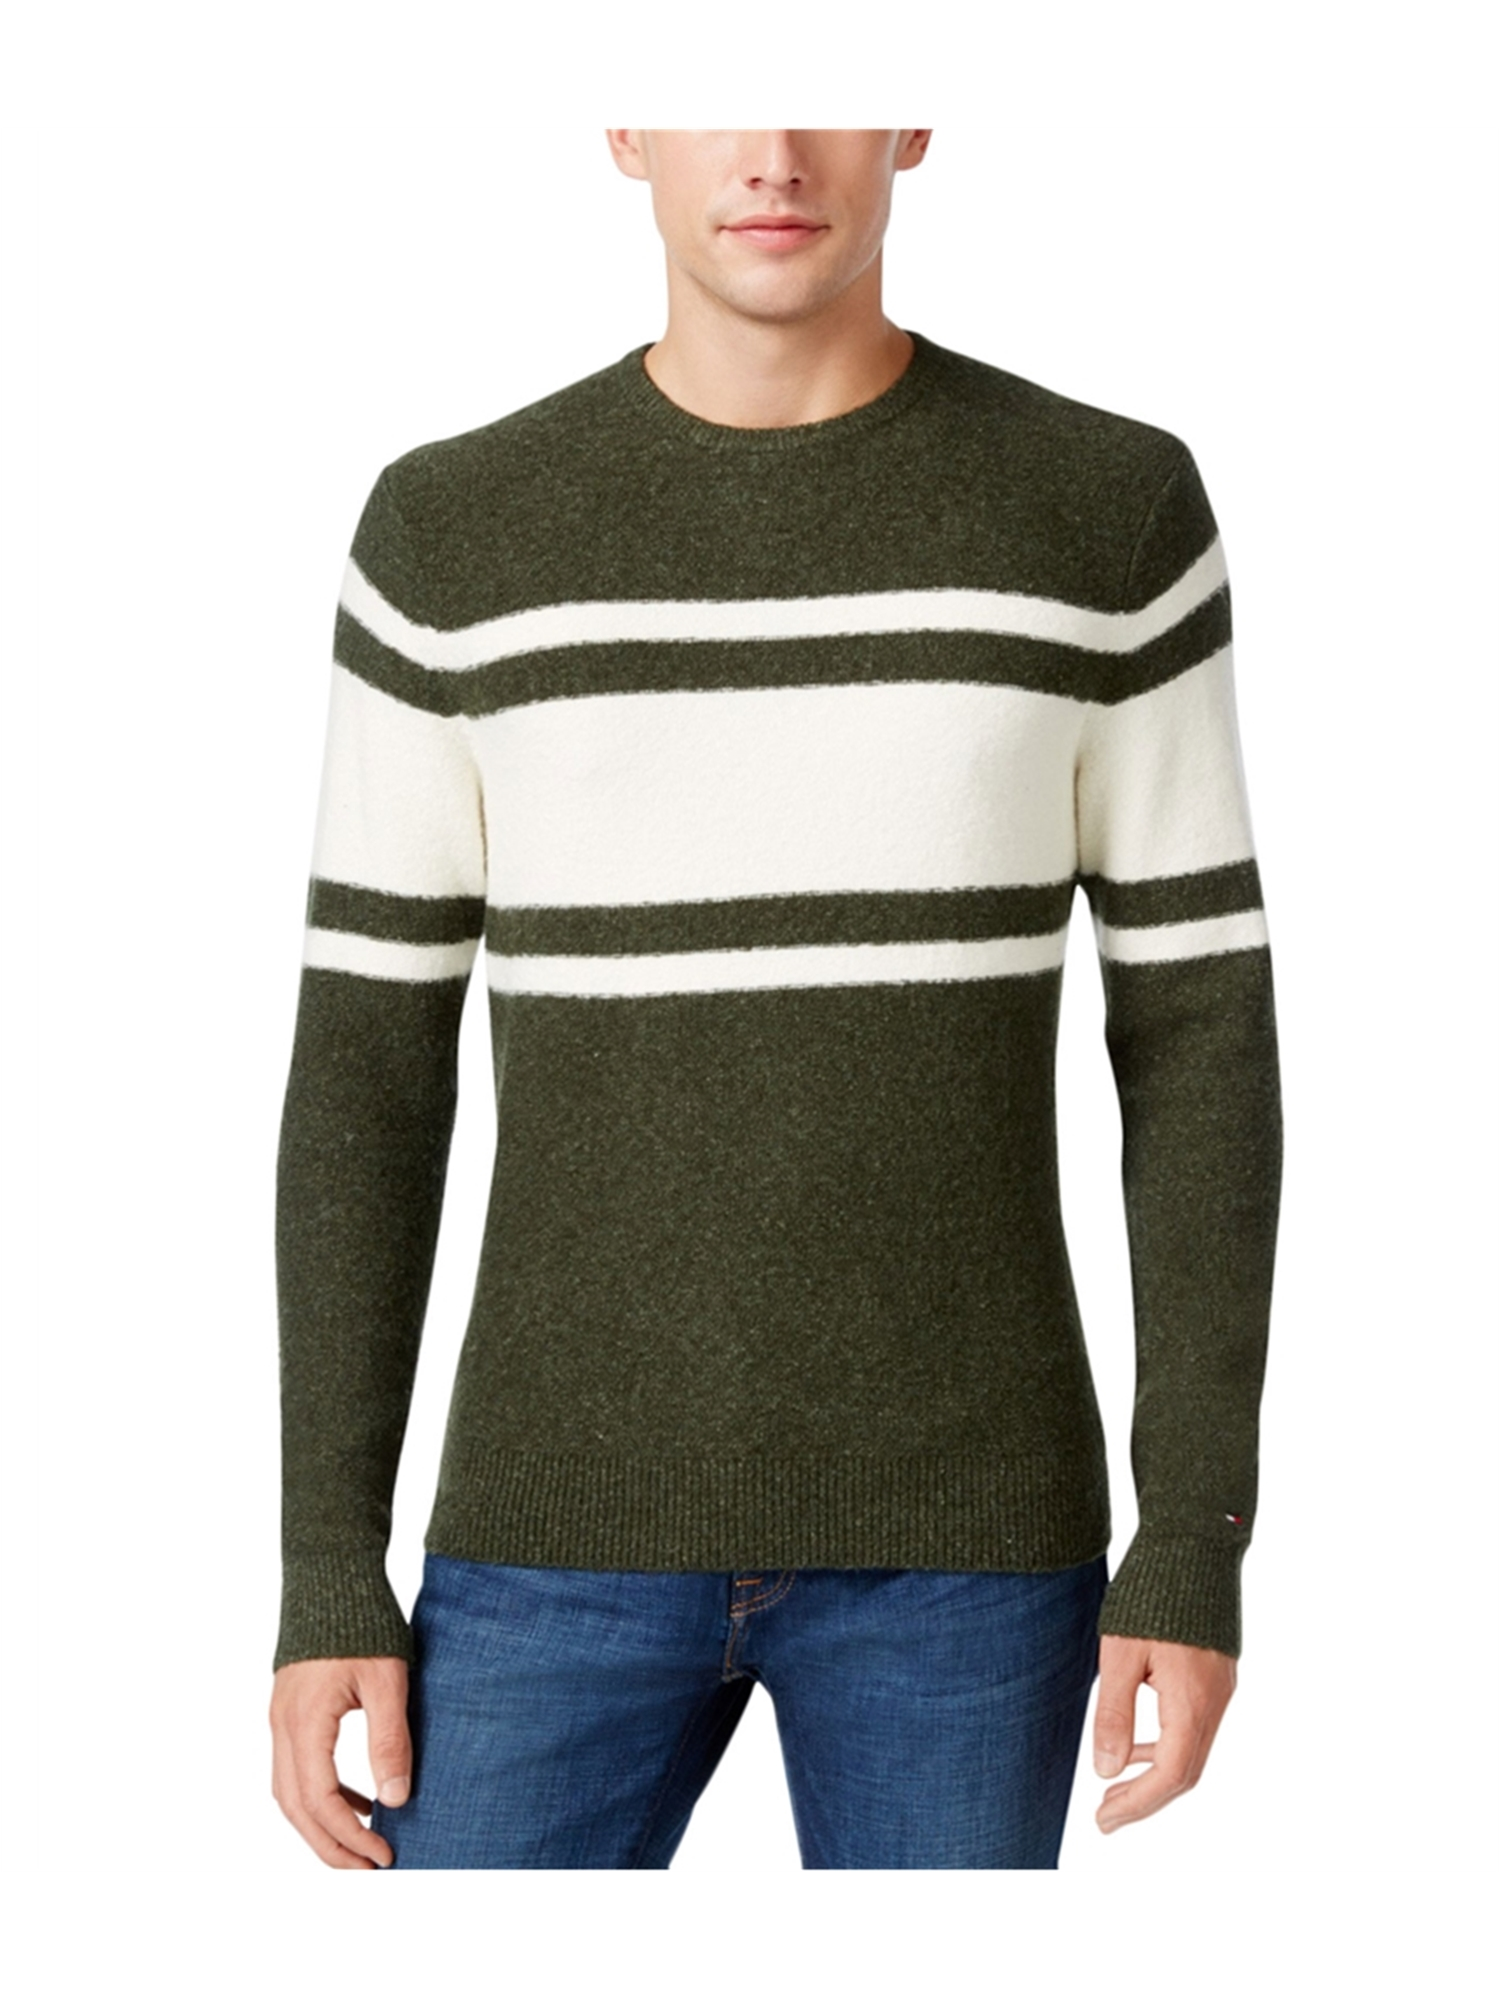 e10672231 Tommy Hilfiger Mens Striped Pullover Sweater 351 XL